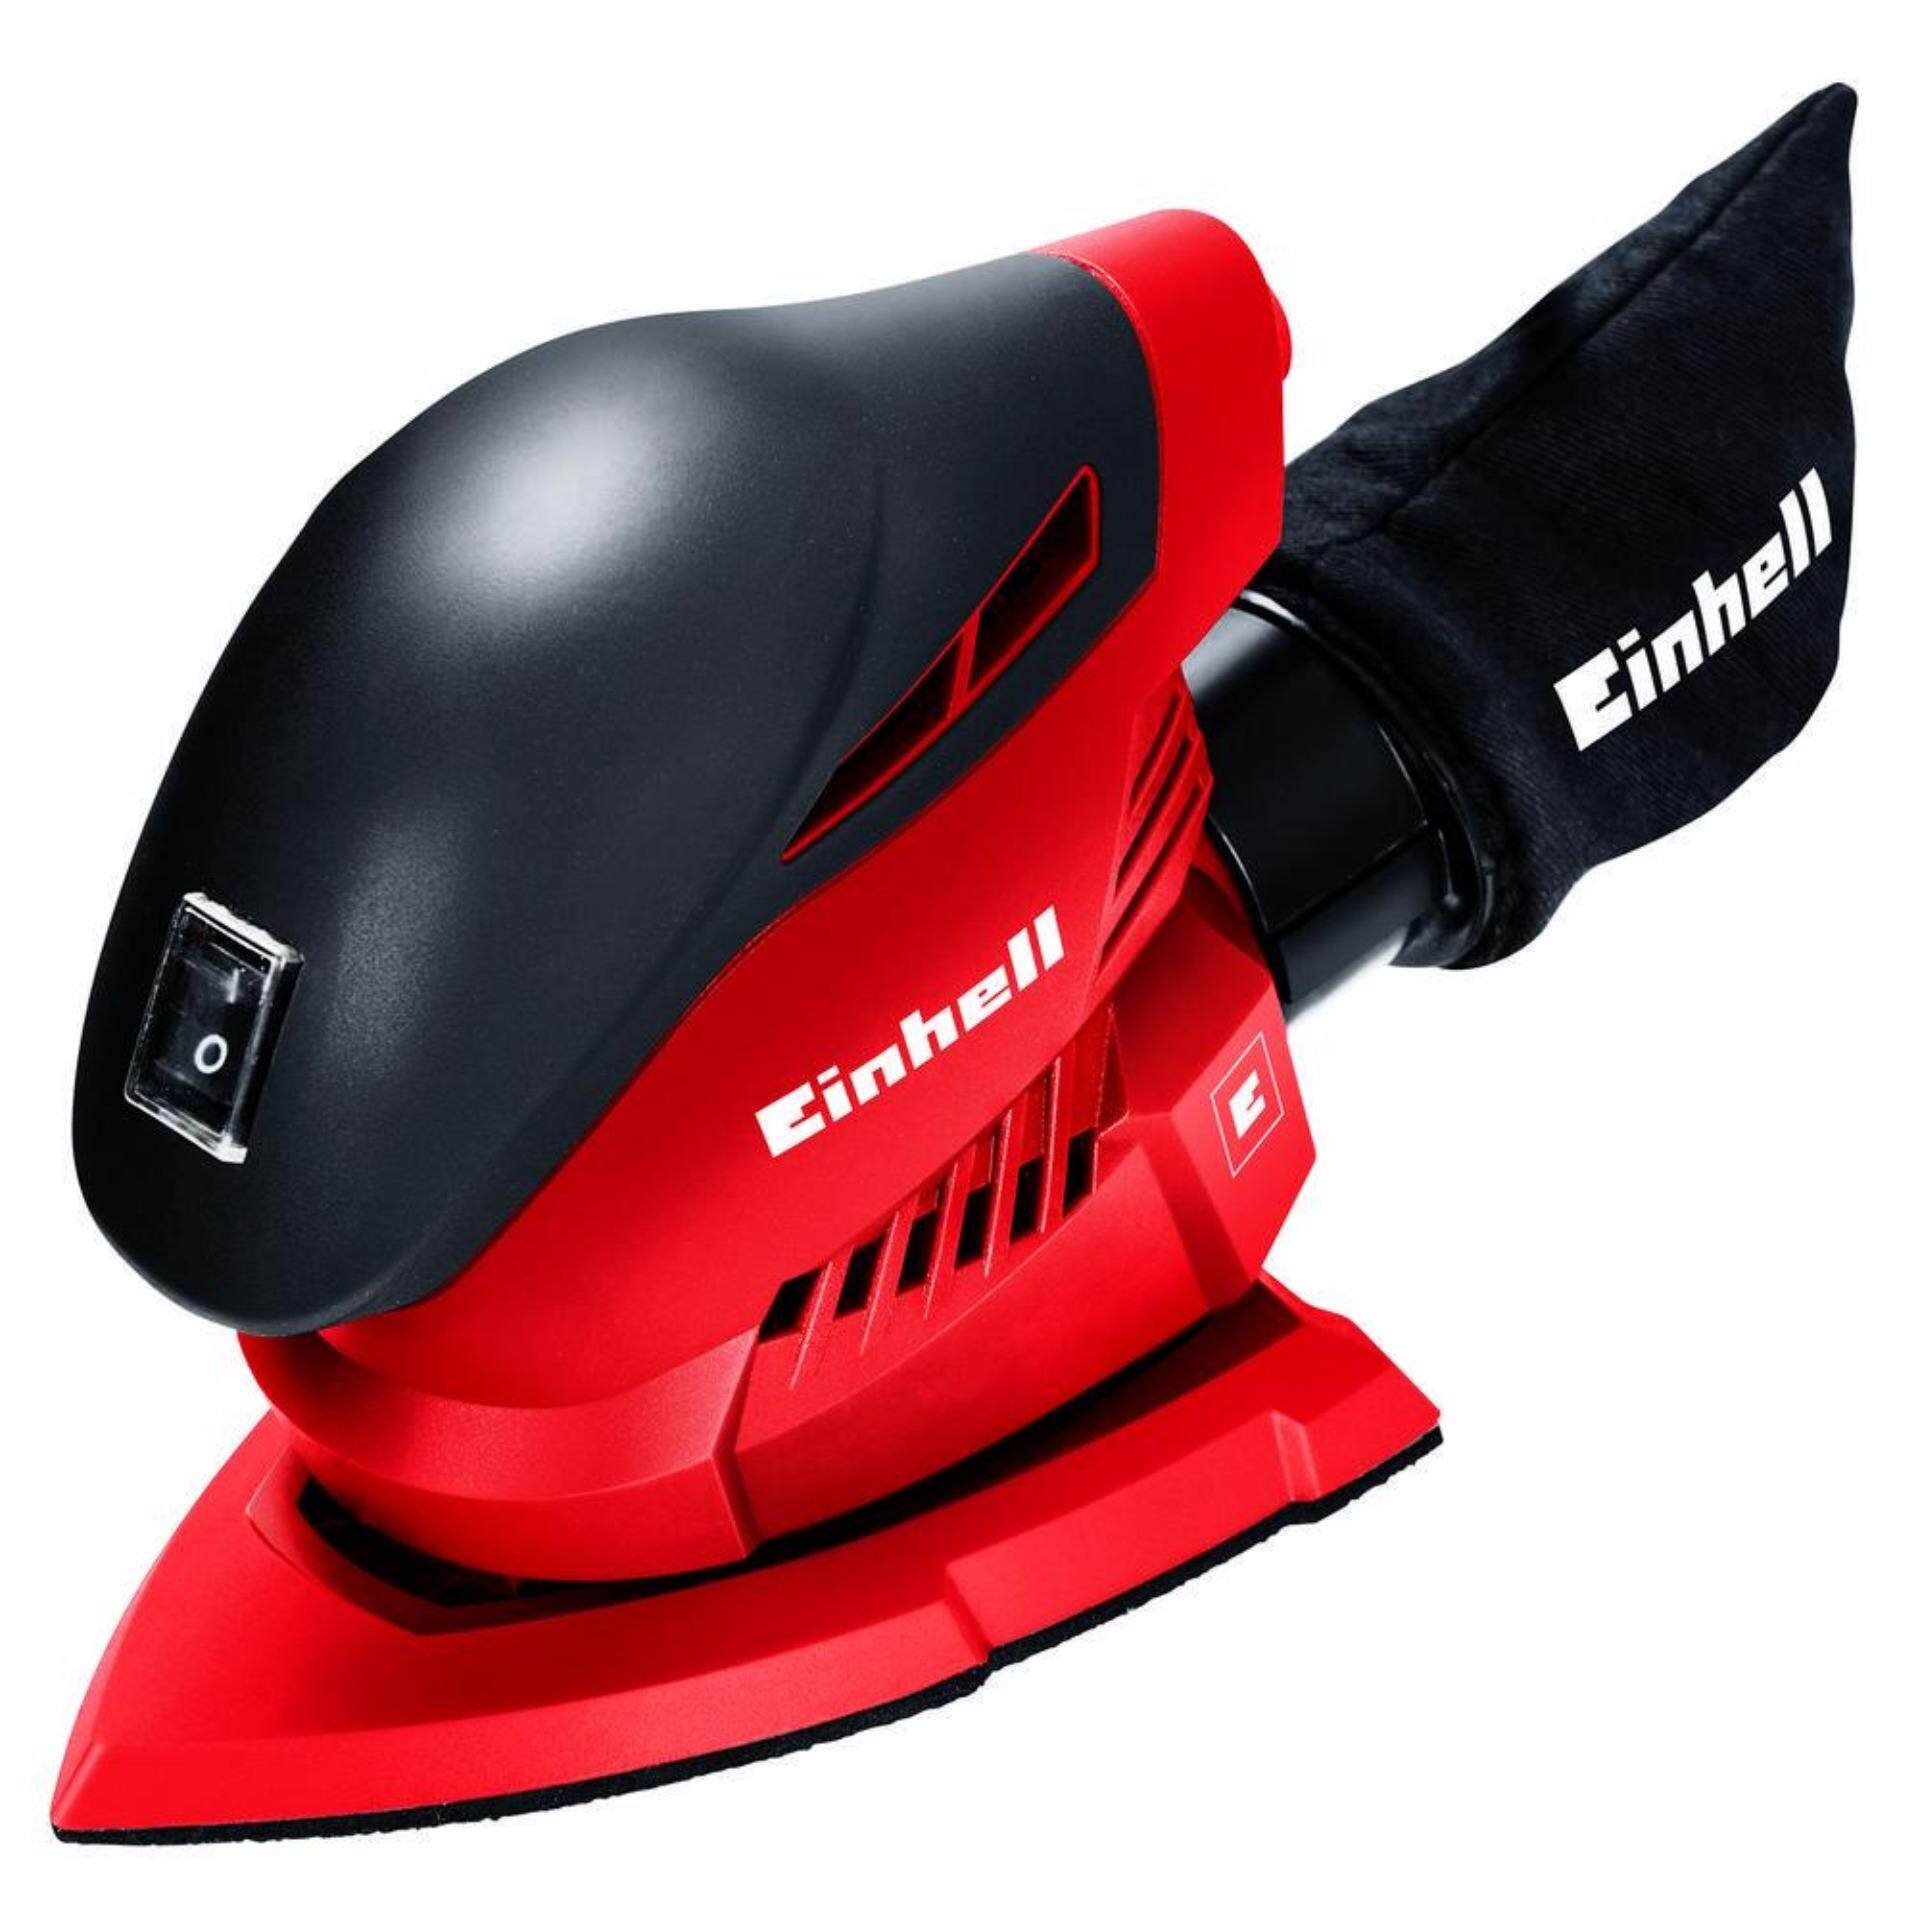 Einhell TH-OS 1016 Multi Sander [NEW ARRIVAL FROM GERMANY]